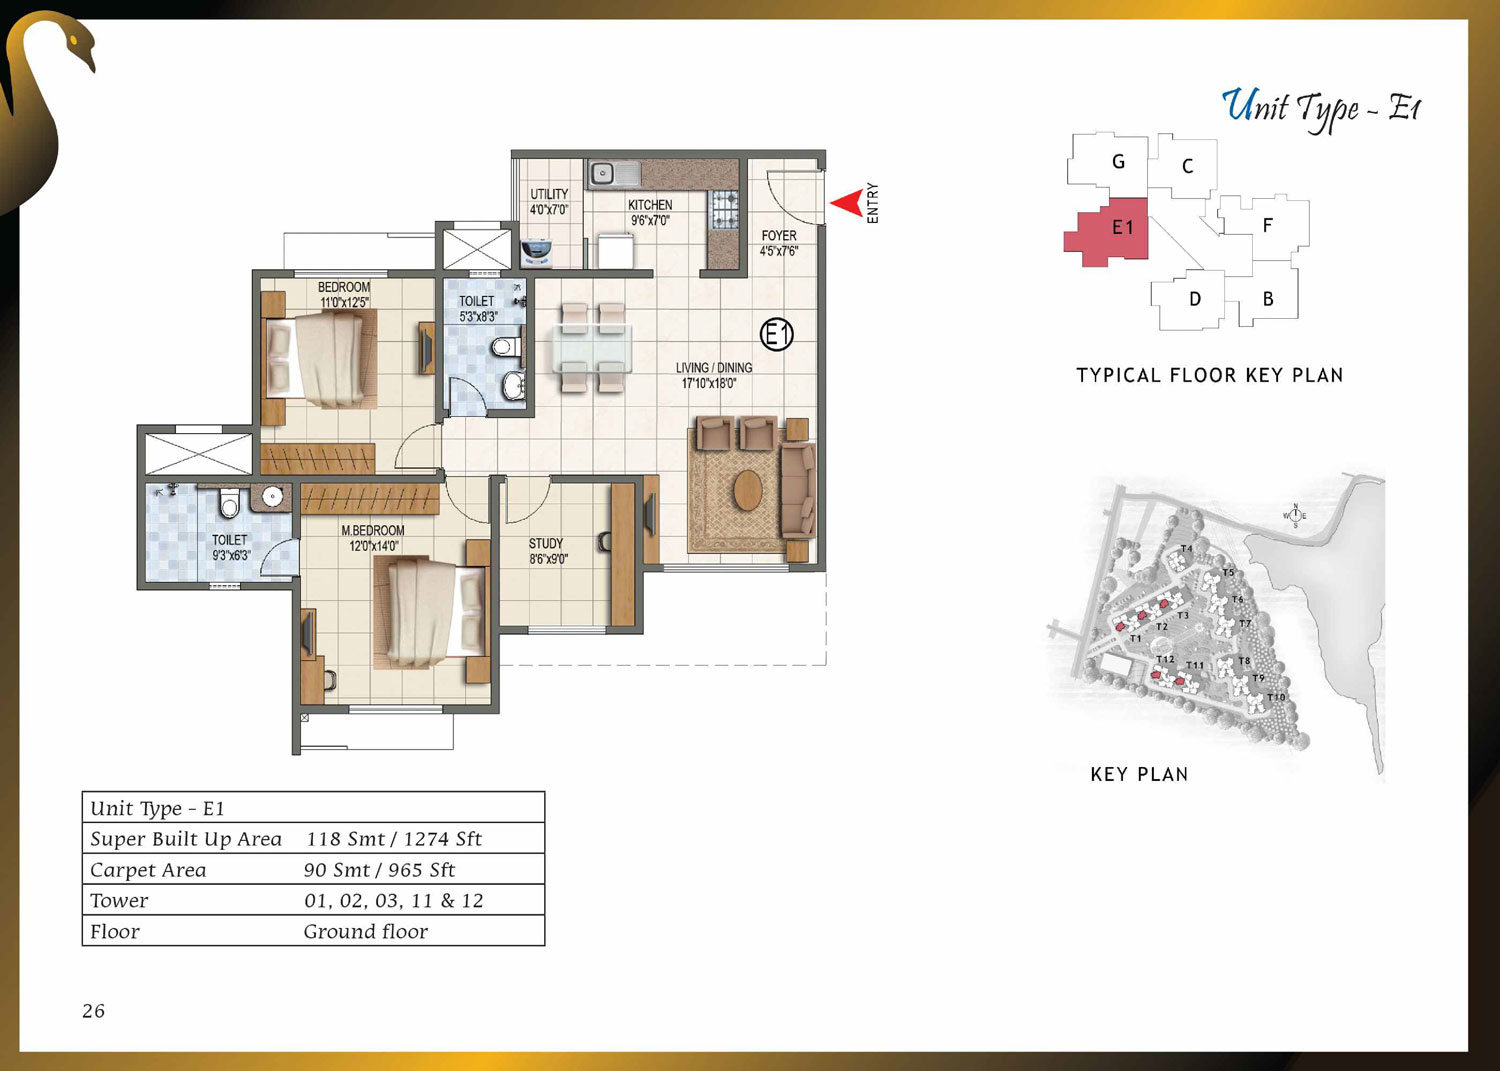 Type E1 - 1274 Sq Ft